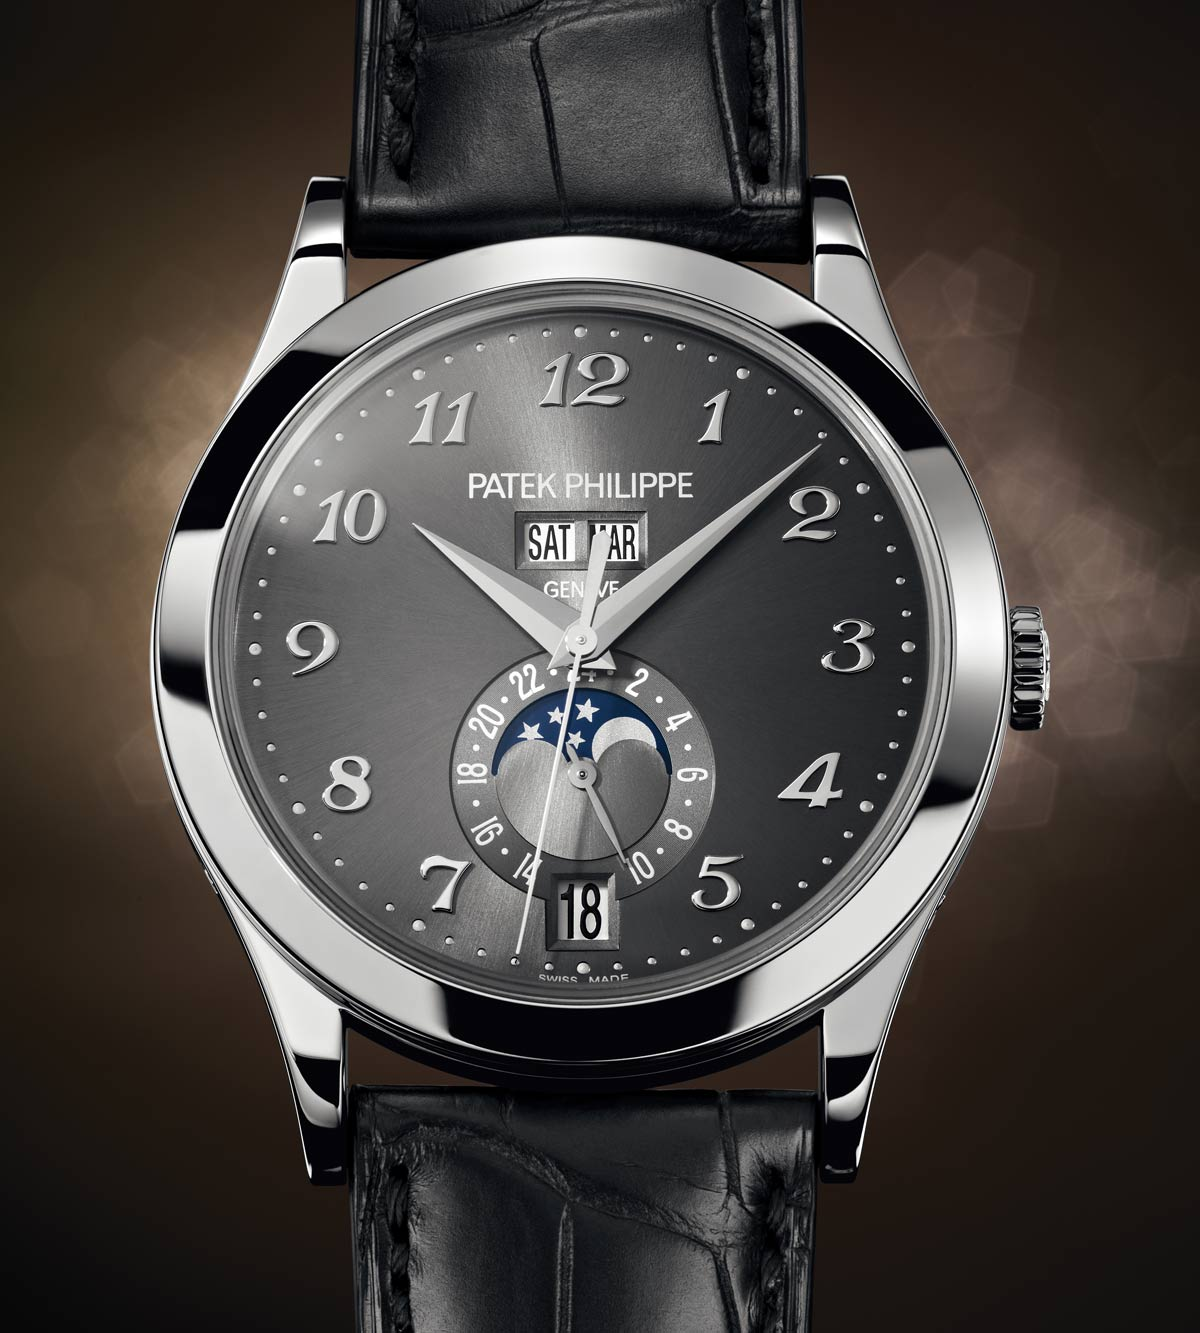 35bf97614e4 The layout is somehow reminiscent of Patek Philippe perpetual calendars  from the 1940s and 1950s with a big difference  on the face of the new  reference ...